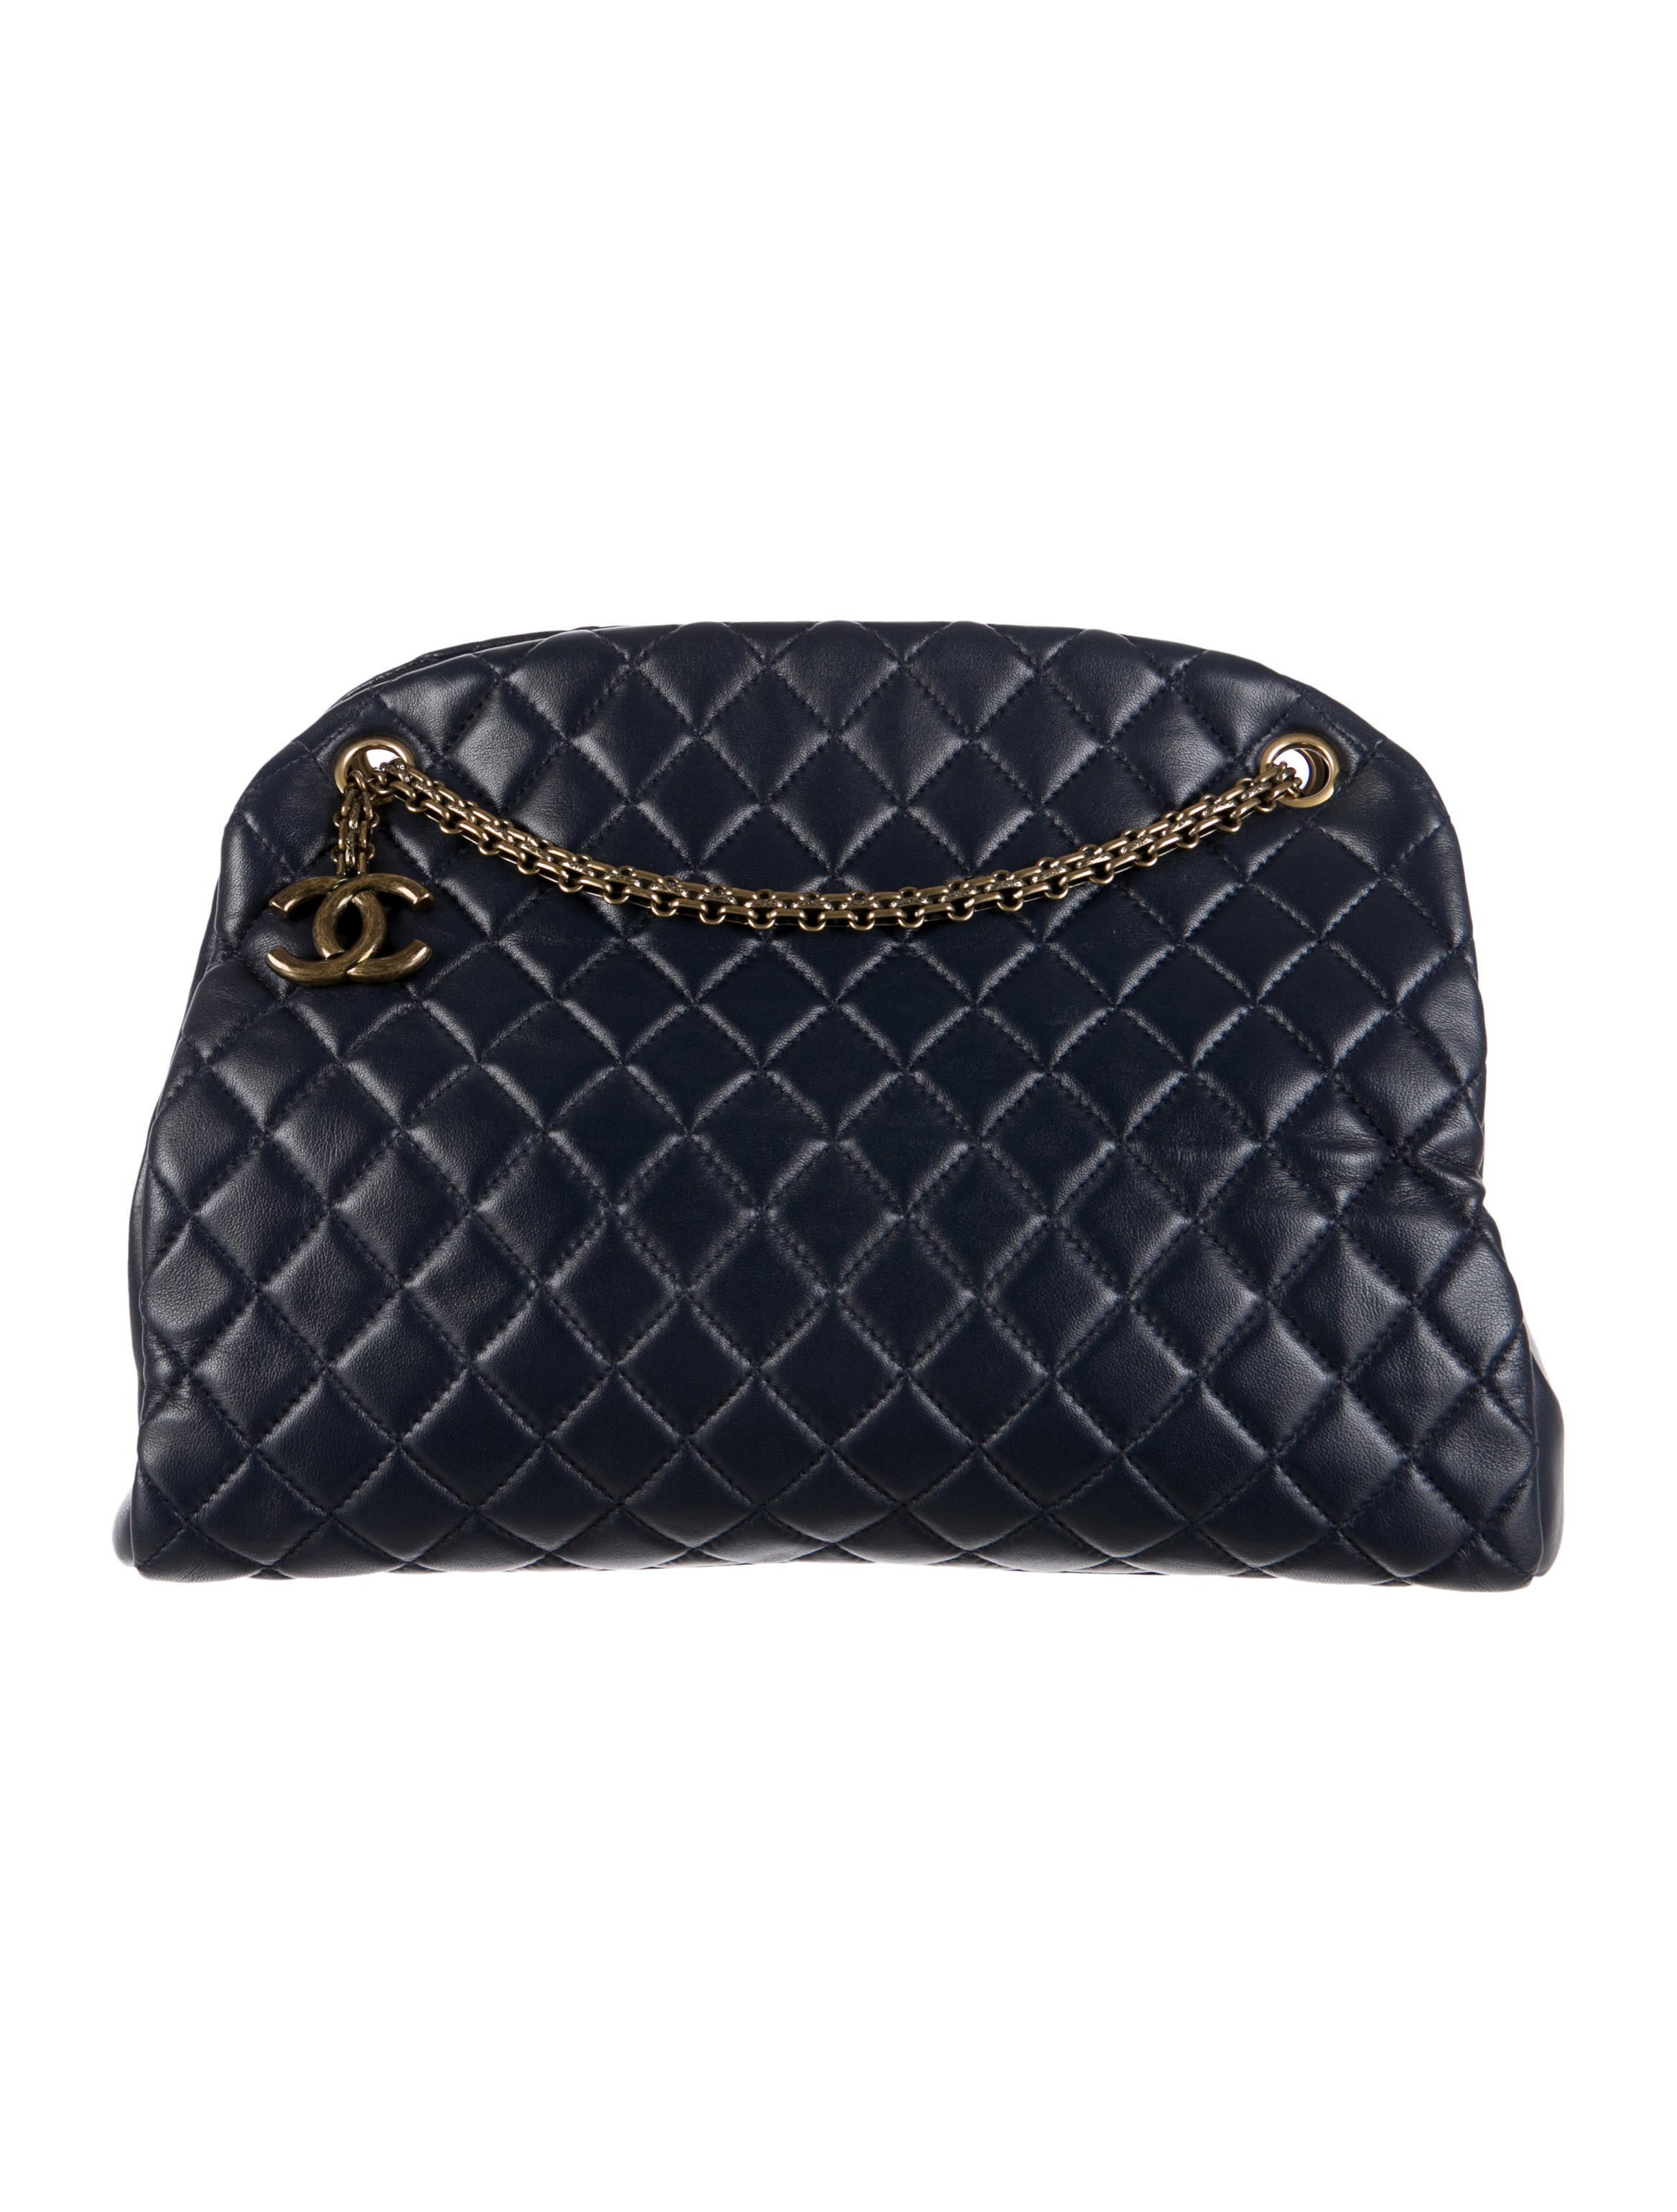 9a8036bd9eaa Chanel Just Mademoiselle Large Bowling Bag - Handbags - CHA98052 ...